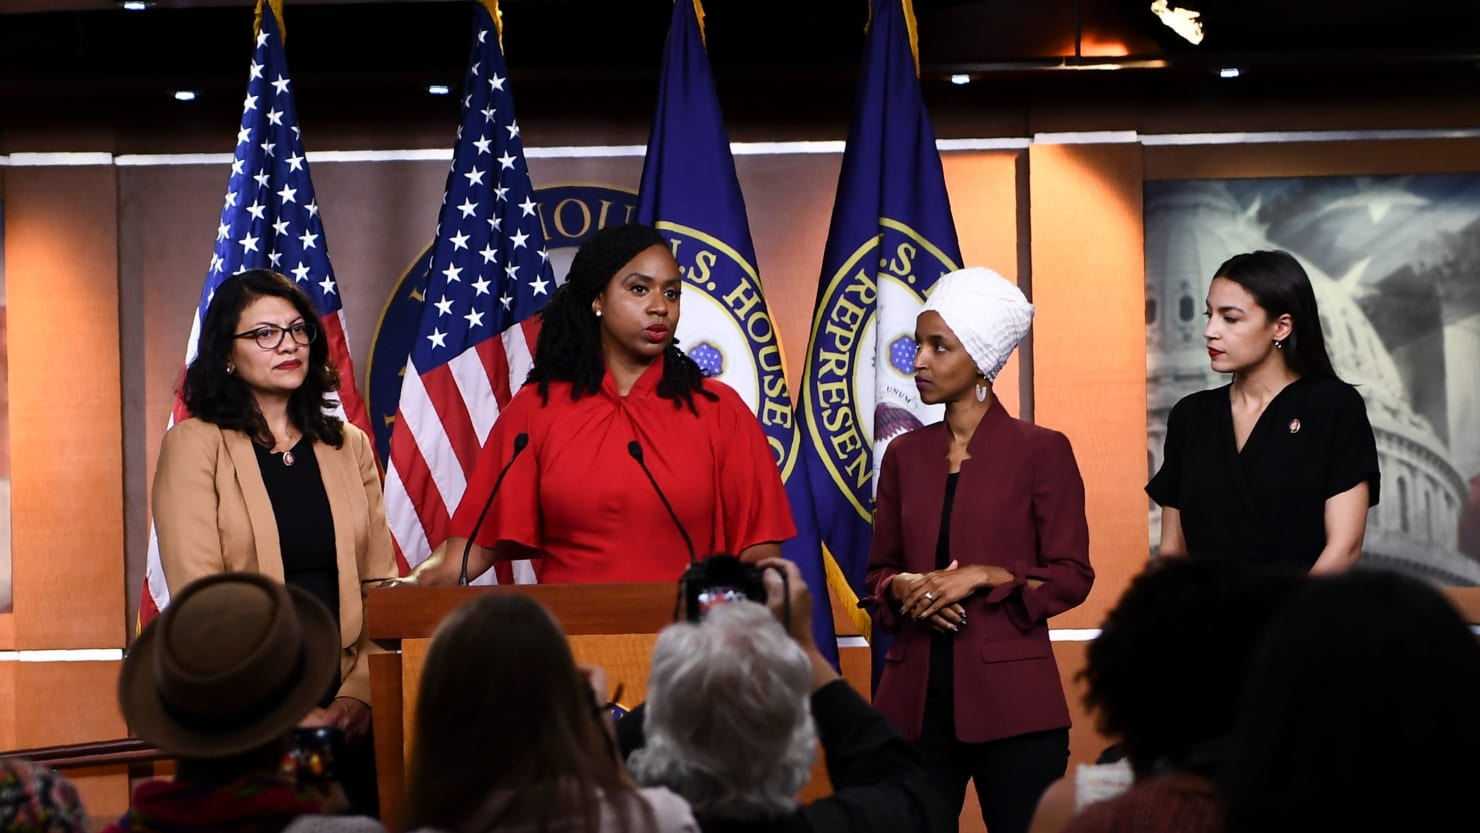 'The Squad' Hits Back at Trump's Racist Tirade: 'We Will Not be Silenced'